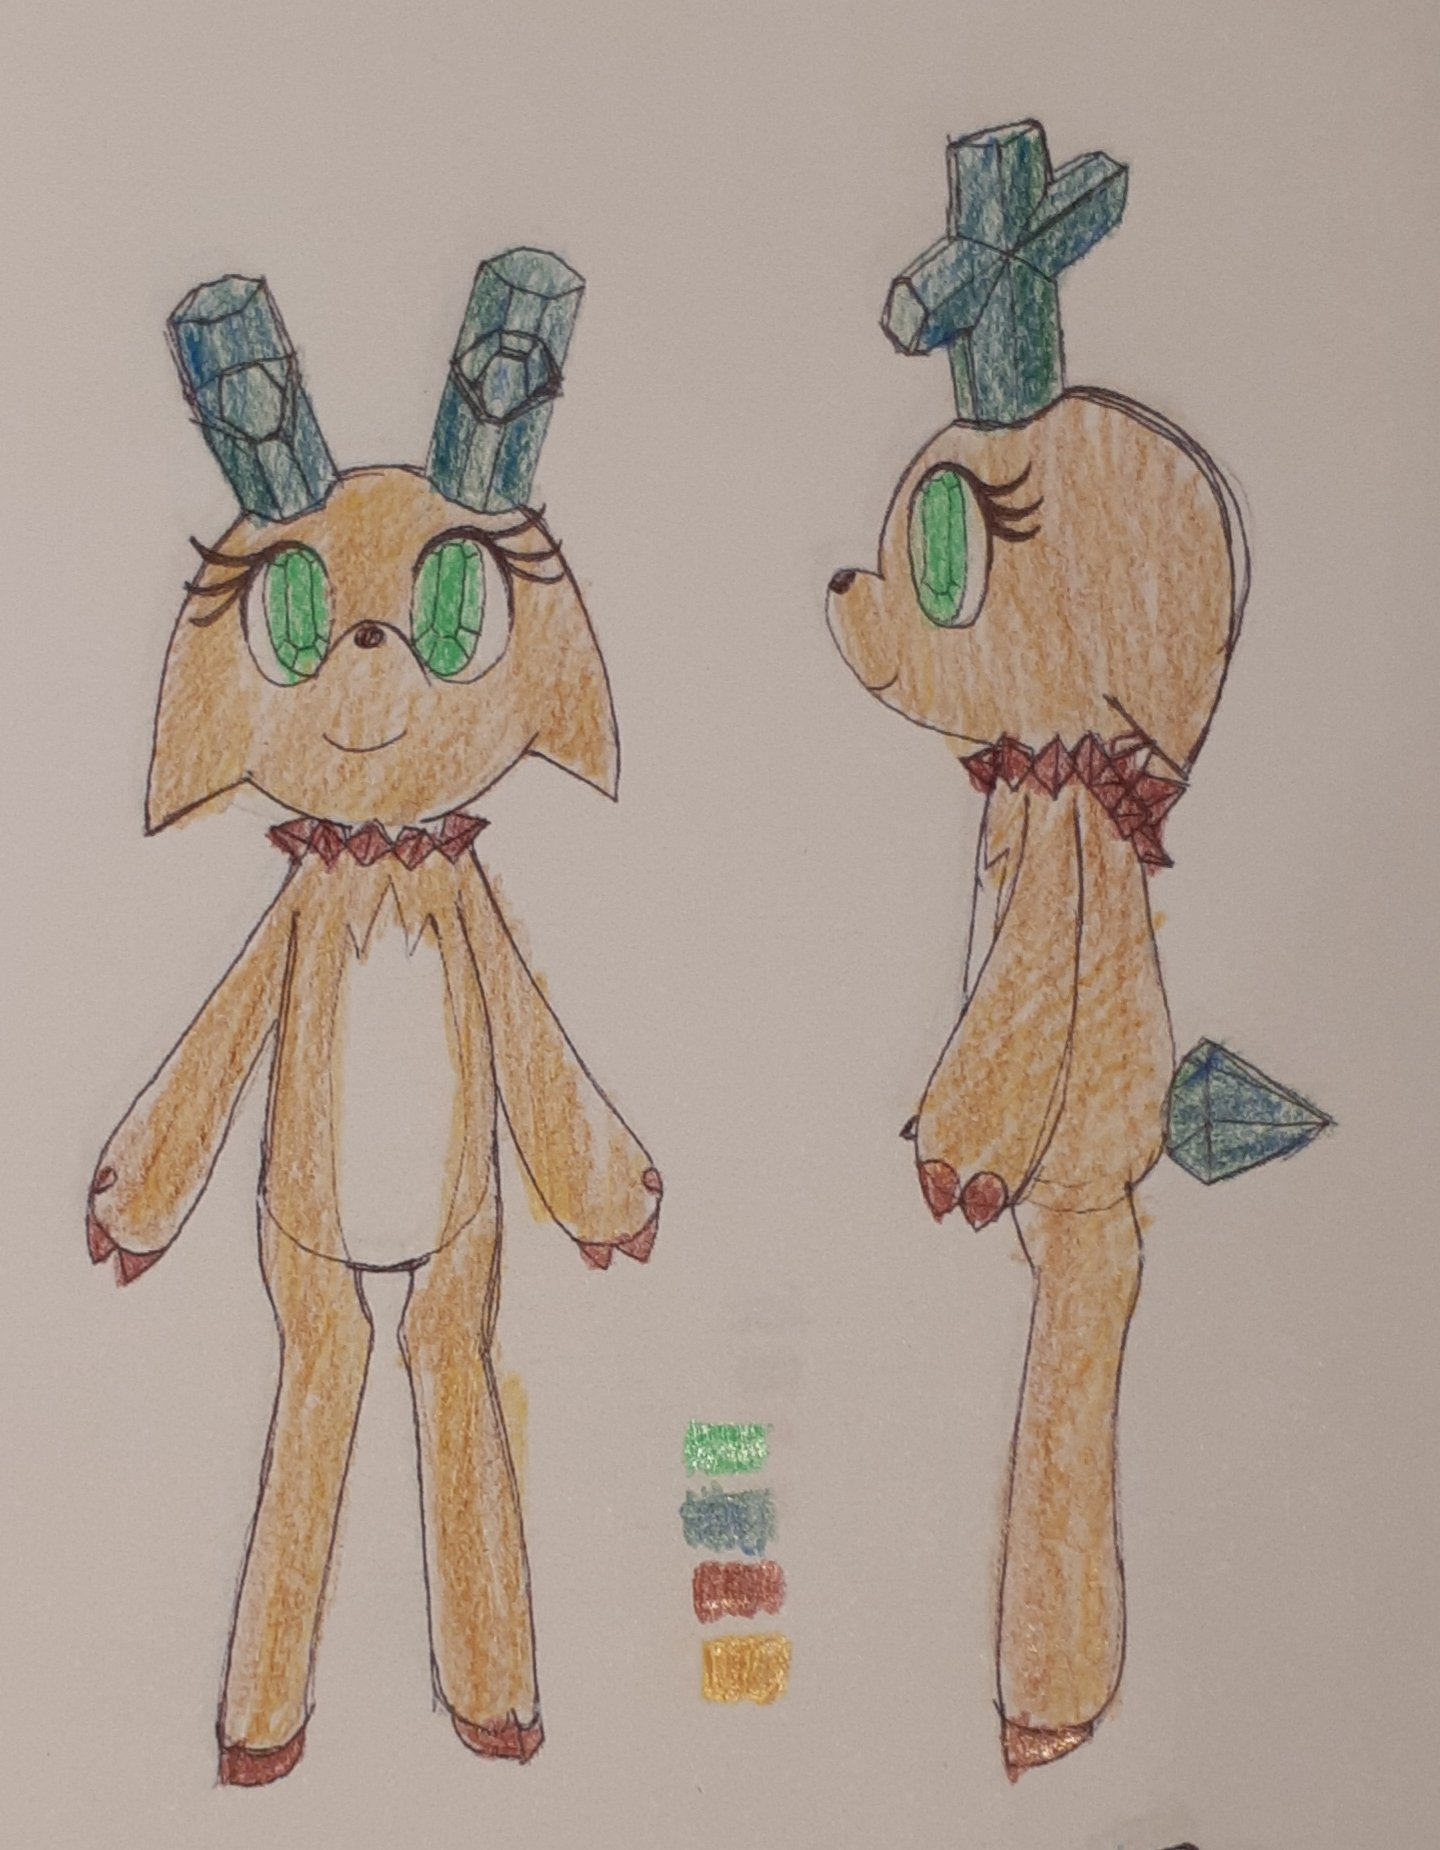 Concept sketches of a gem-themed deer character. The antlers are staurolites, the neck has some crystals, and the tail is a cut gem. The eyes also have gem irises.